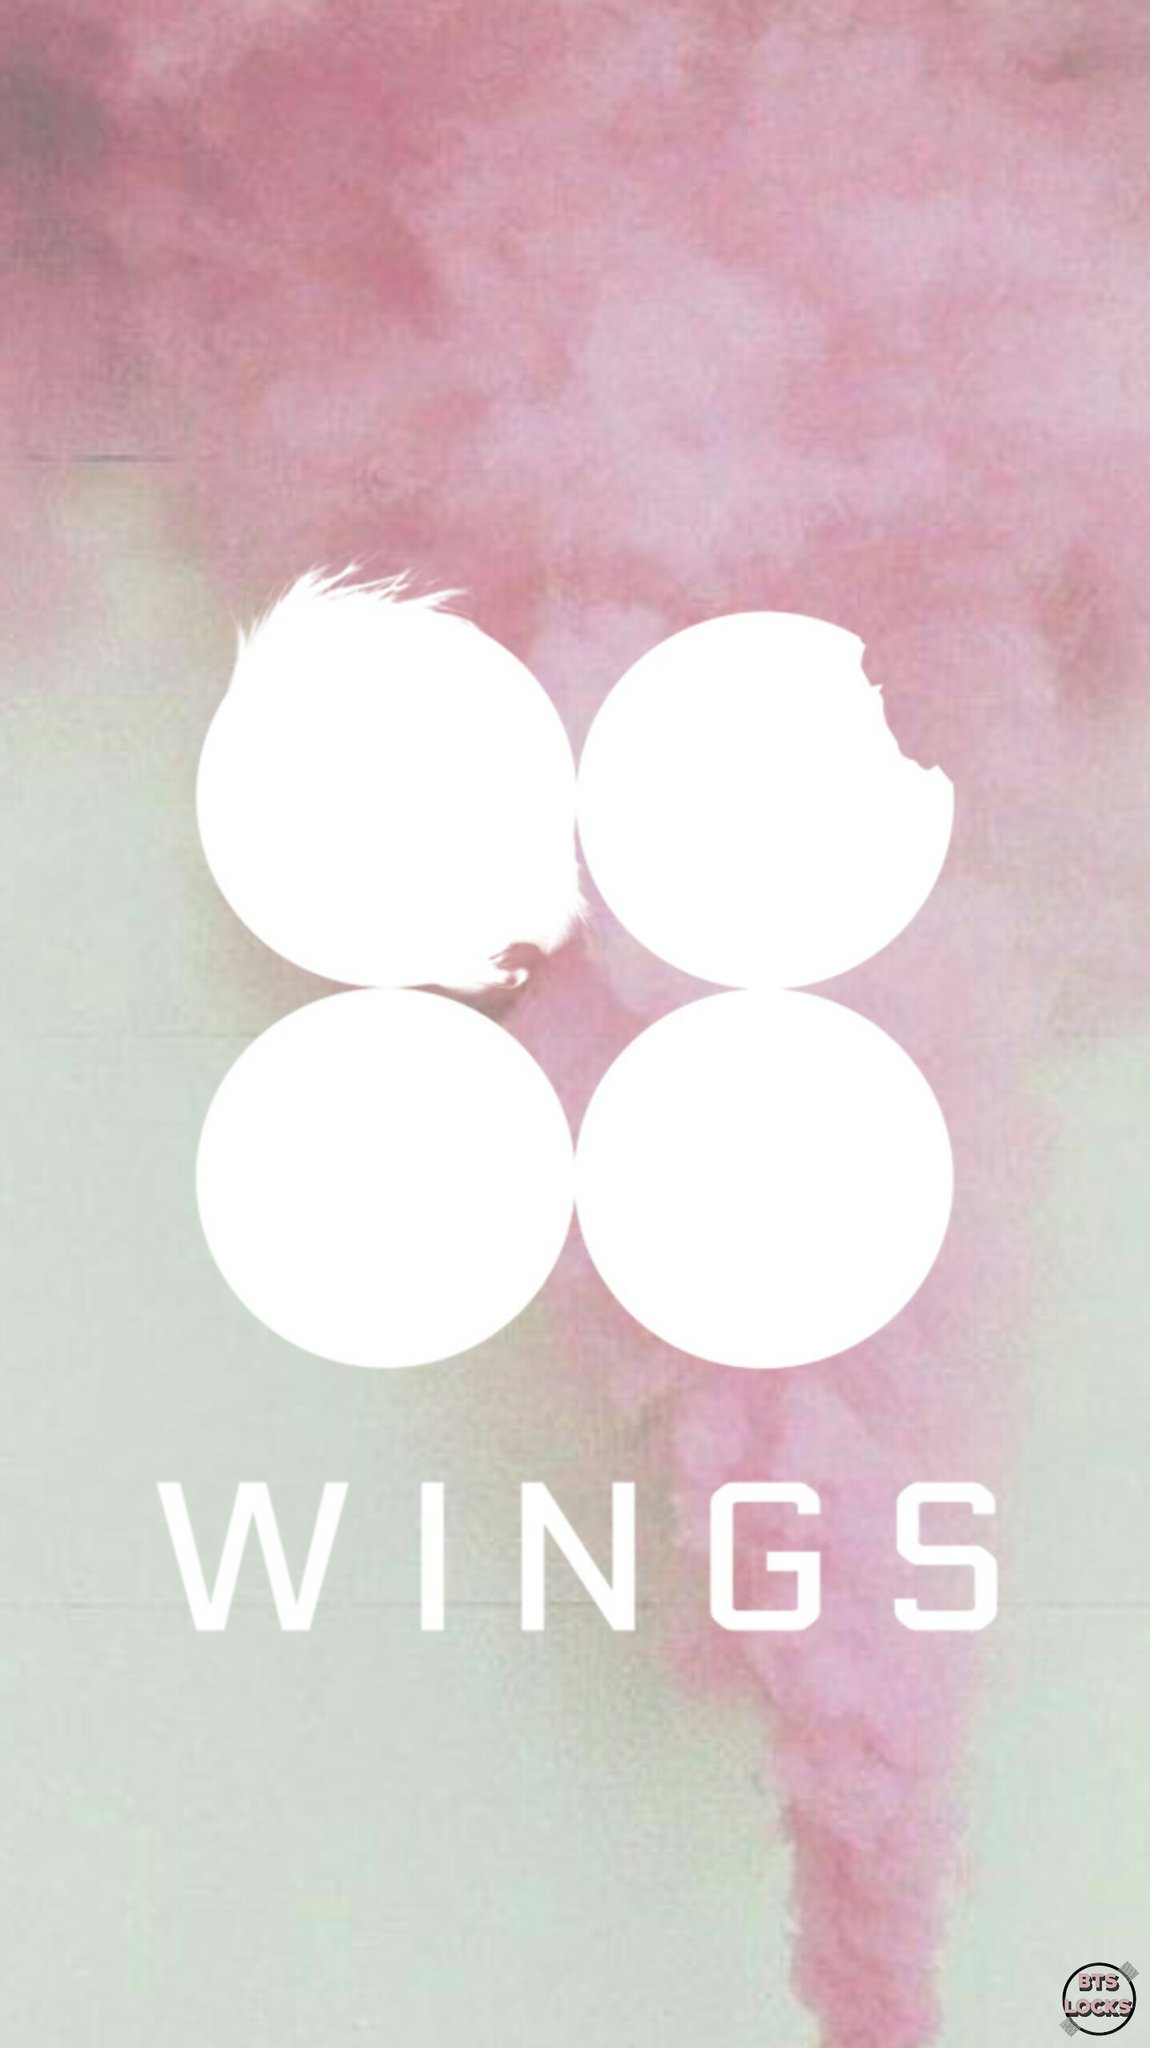 Iphone wallpaper tumblr kpop - Bts Bangtan Boy